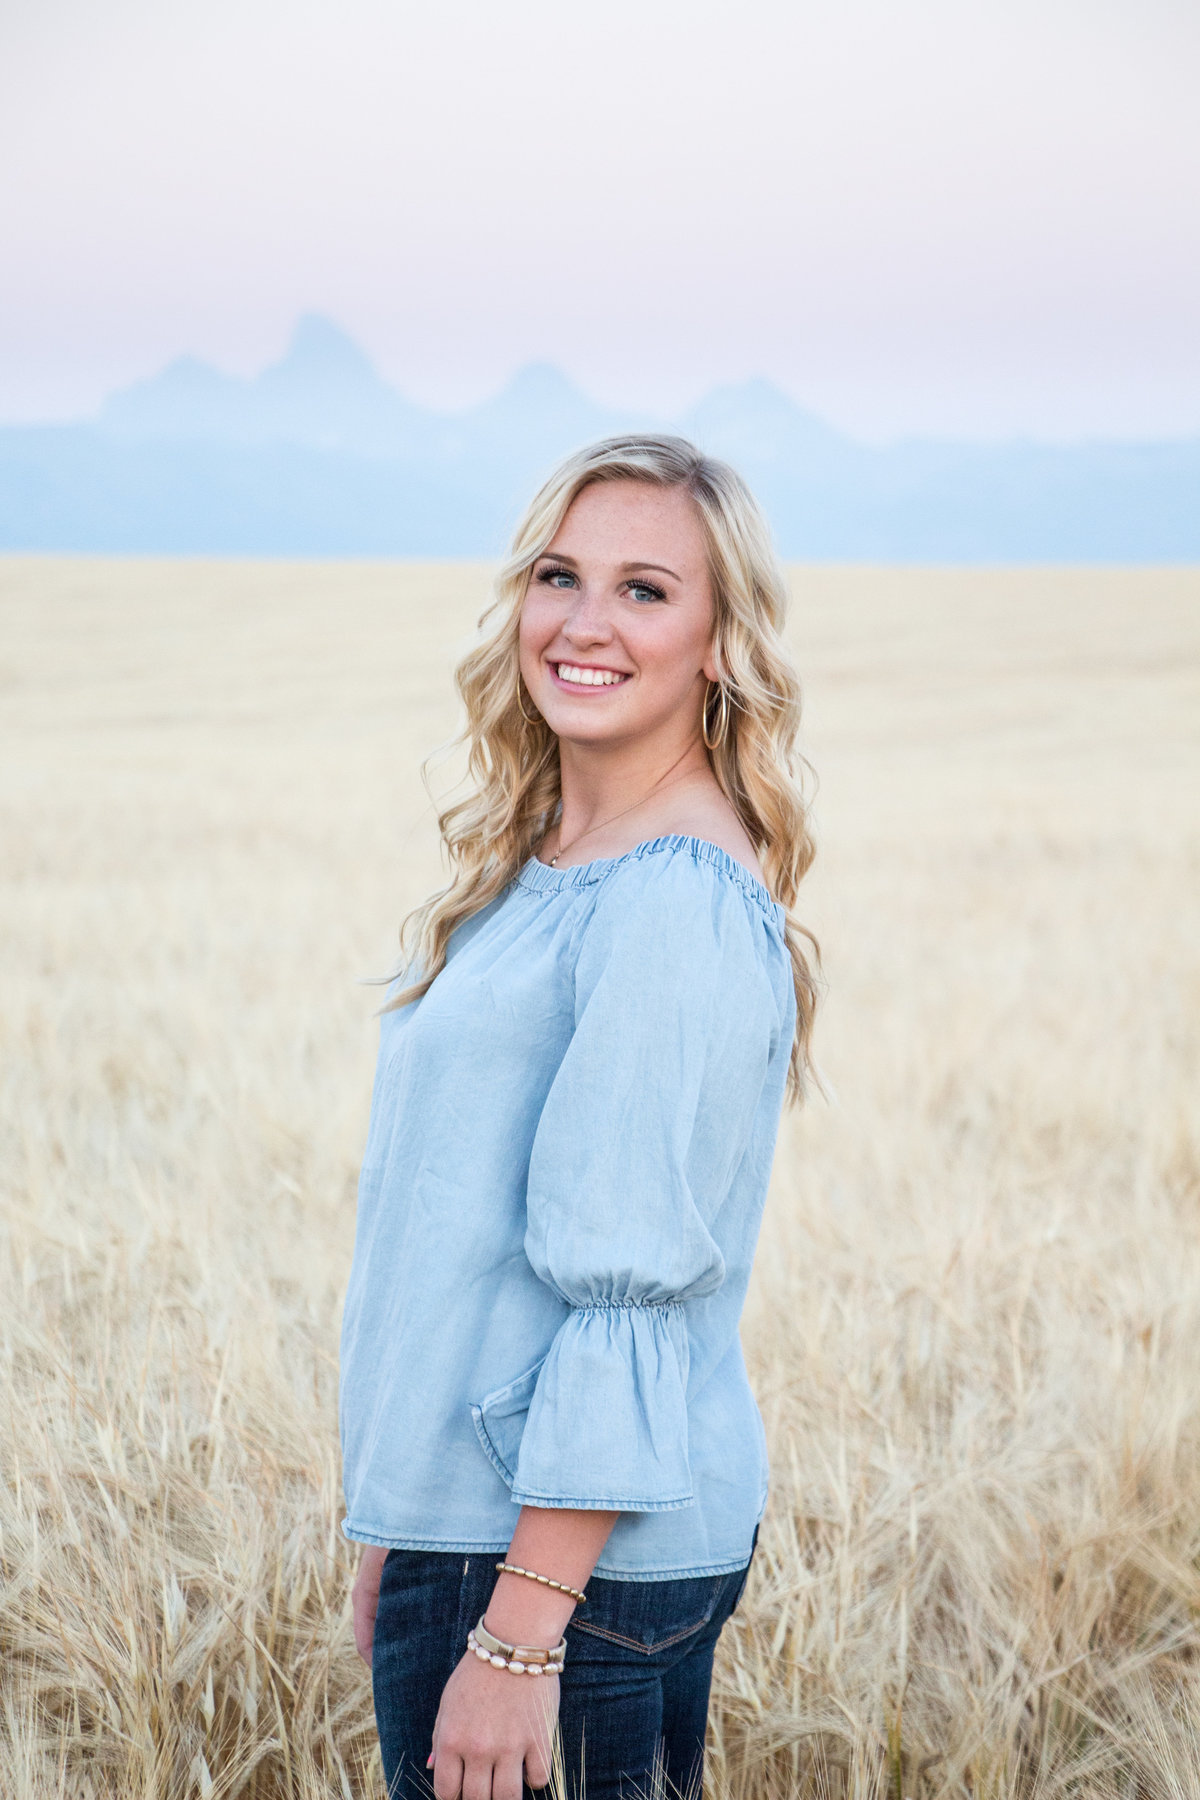 Senior Portraits, Teton Valley, Idaho, Wheat field